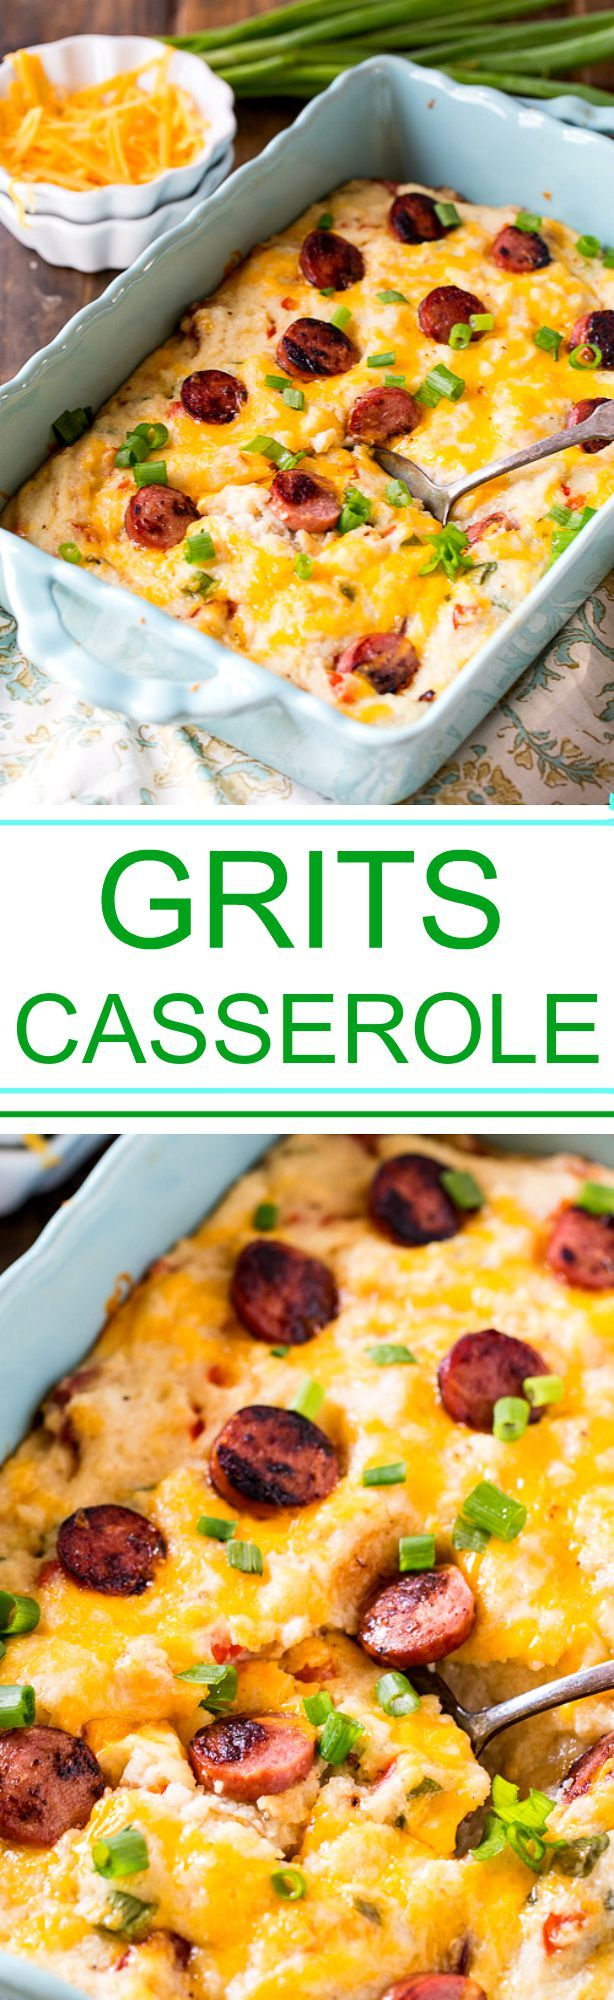 Cheesy Grits Casserole with smoked sausage.(Rotel Cheese Grits)